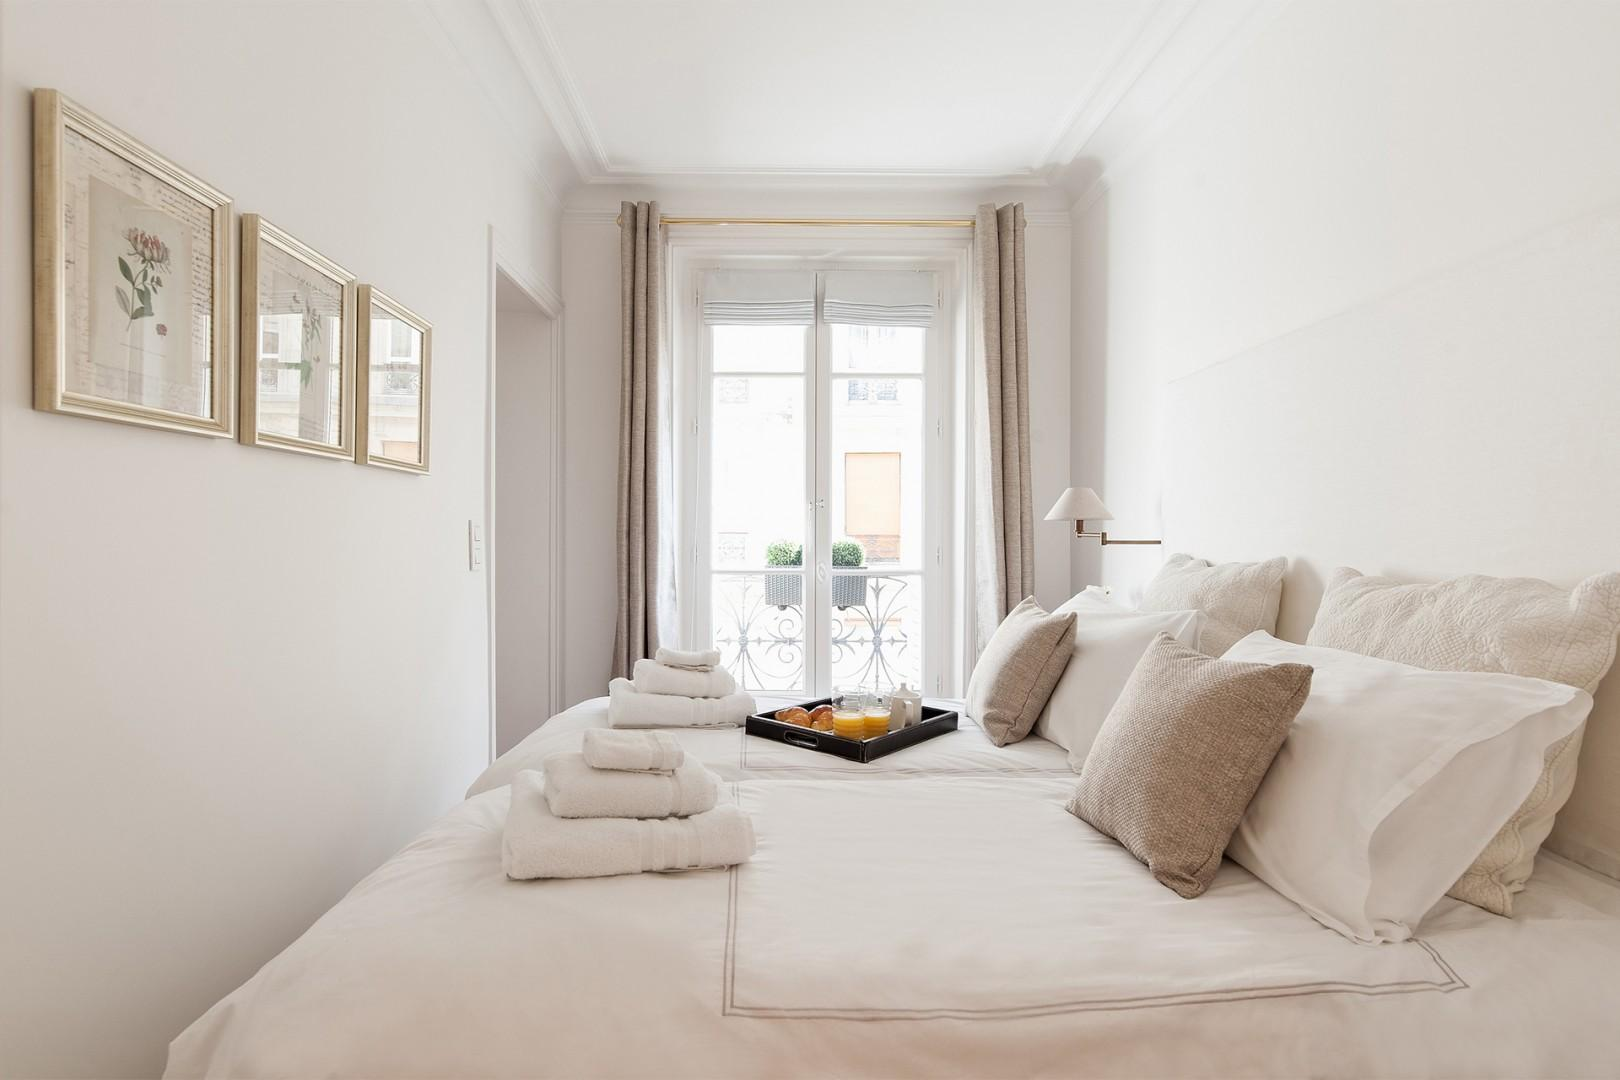 French windows allow you to wake up to the light of Paris.